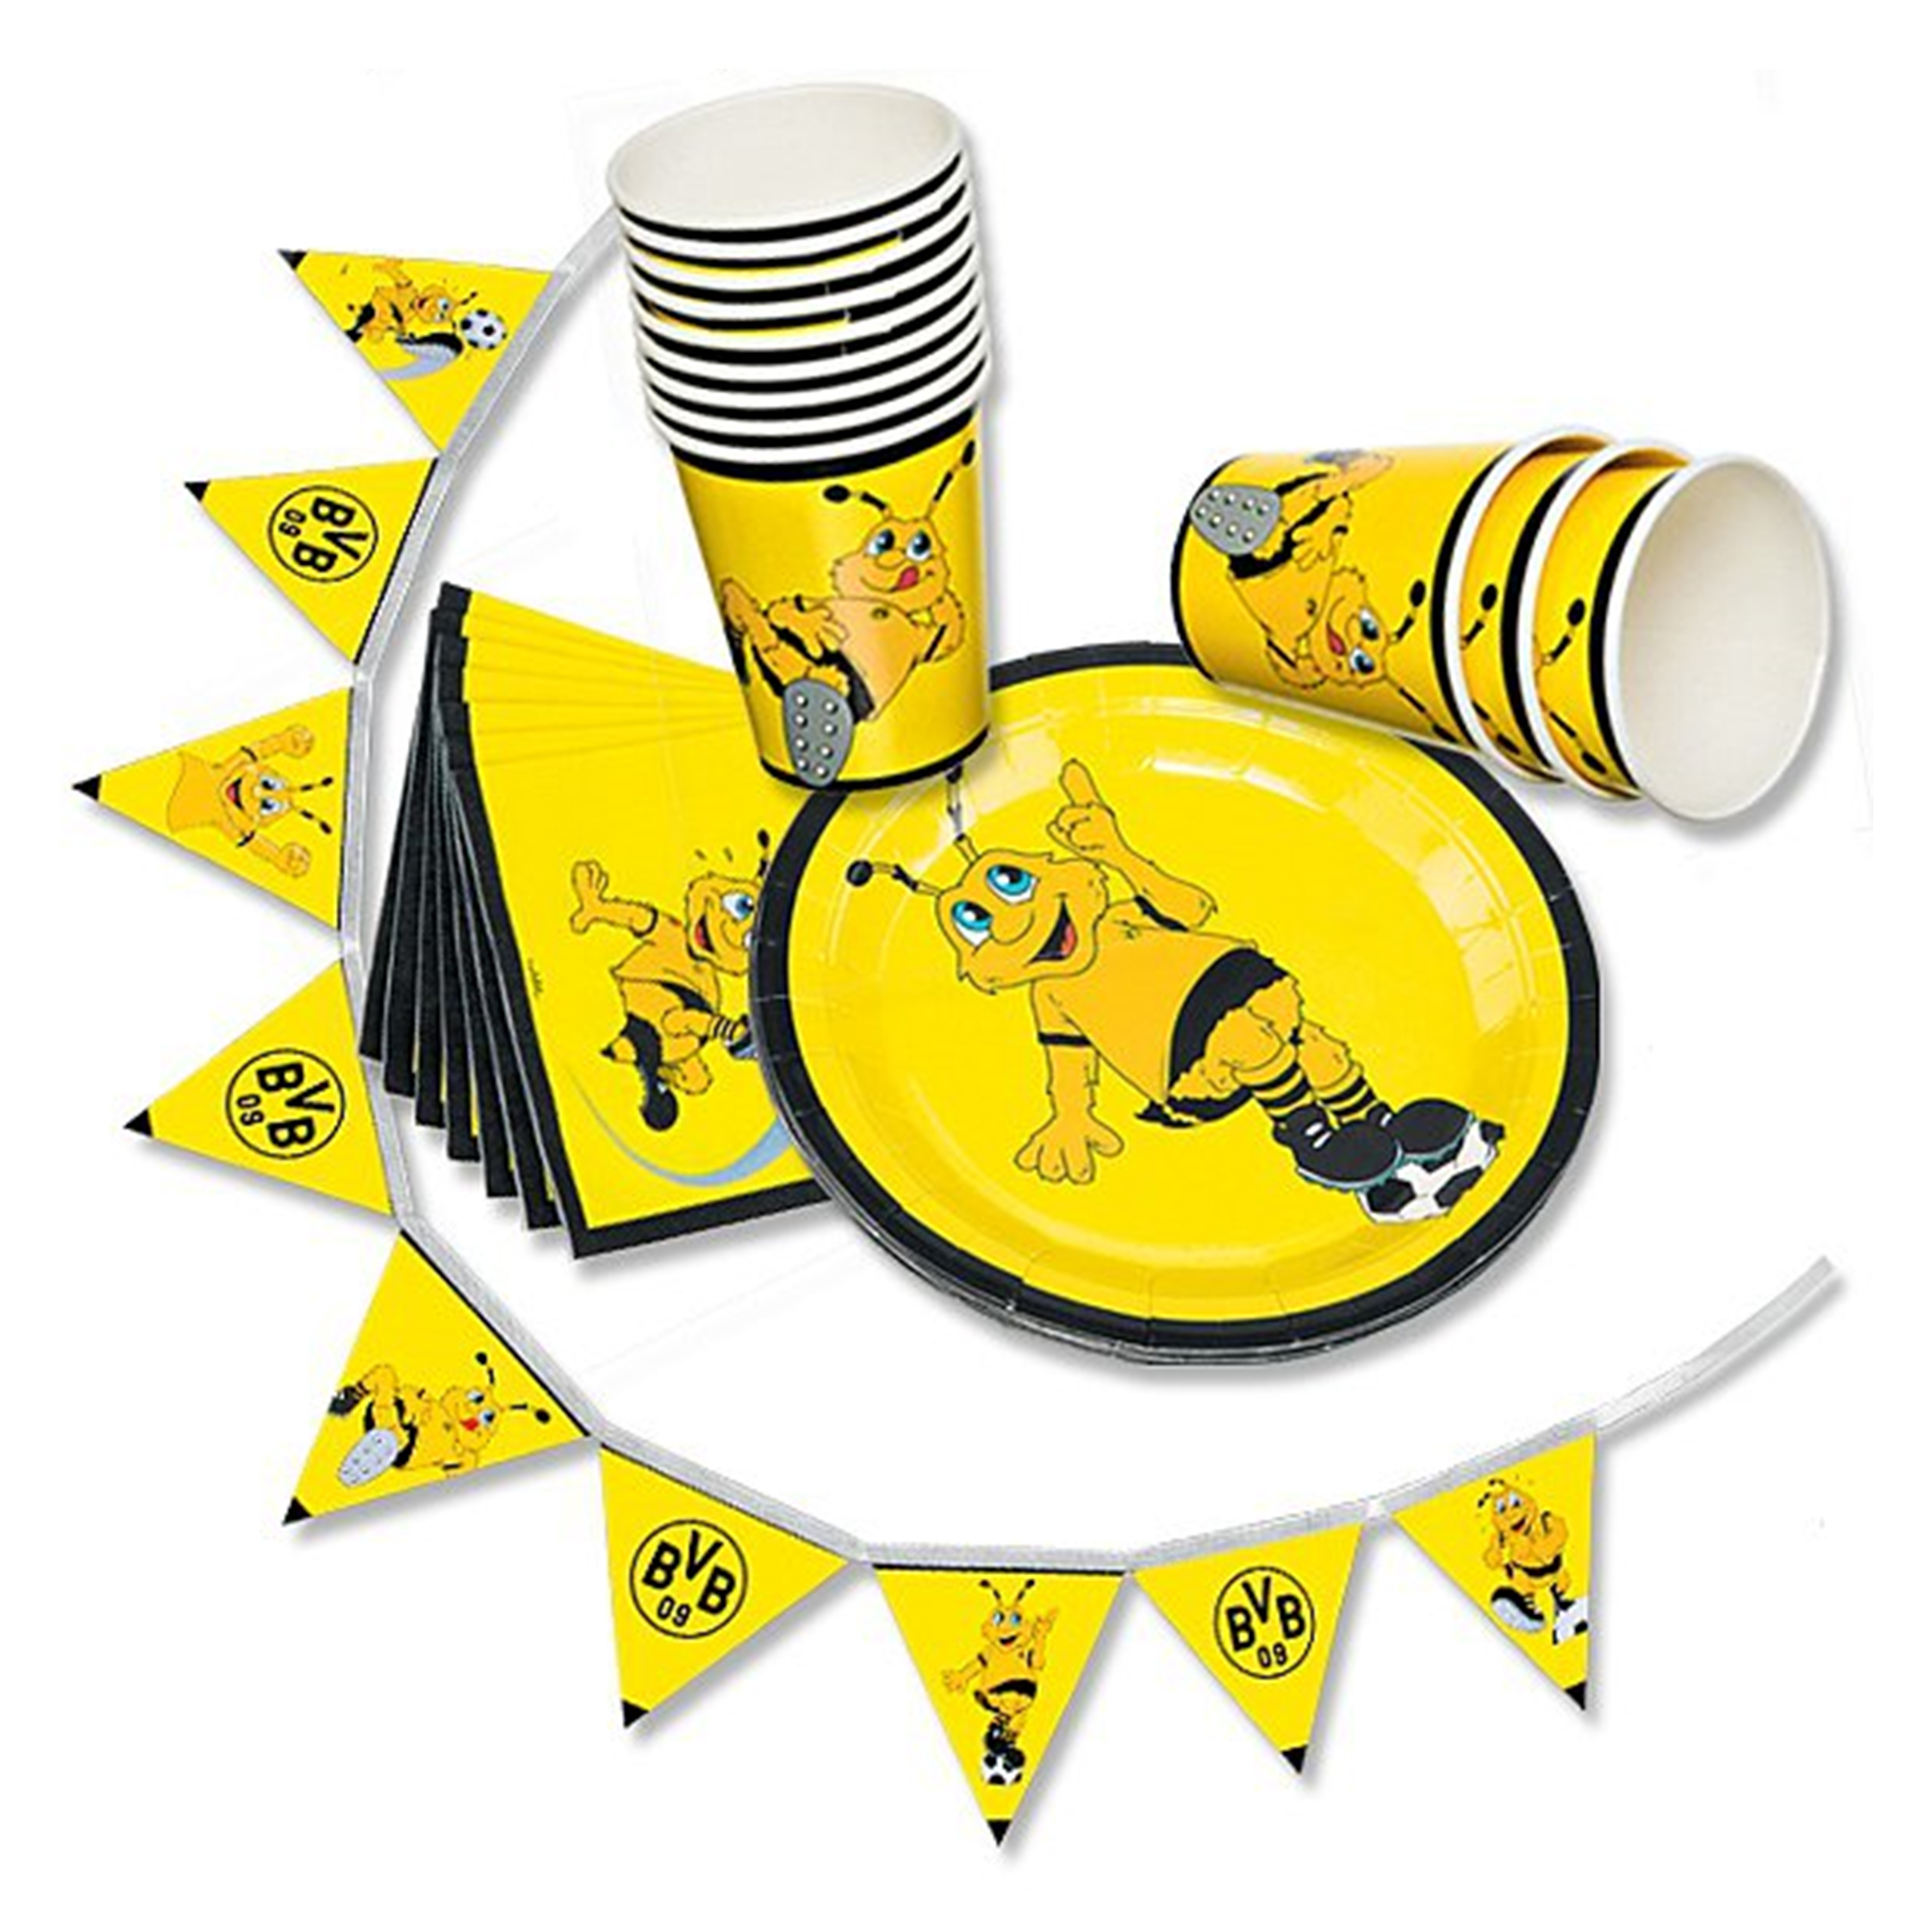 BVB Party Set (31 parts)